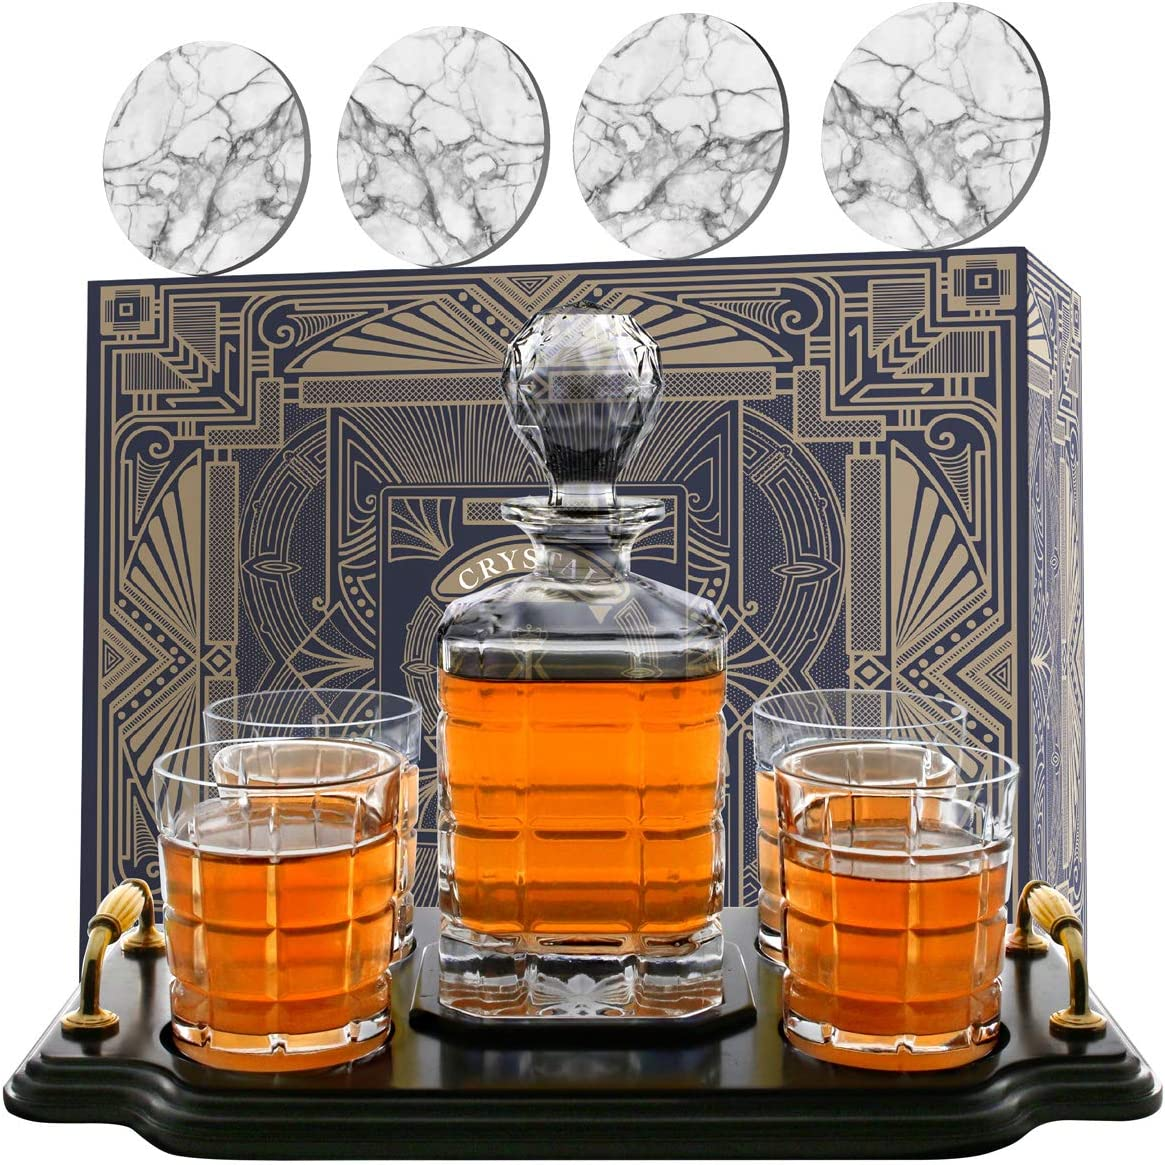 860ml Capacity Scotch Perfect Dad Gifts and Wood Base Includes Whiskey Glasses Whiskey Decanter Set etc Liquor Coasters KROWN KITCHEN for Bourbon